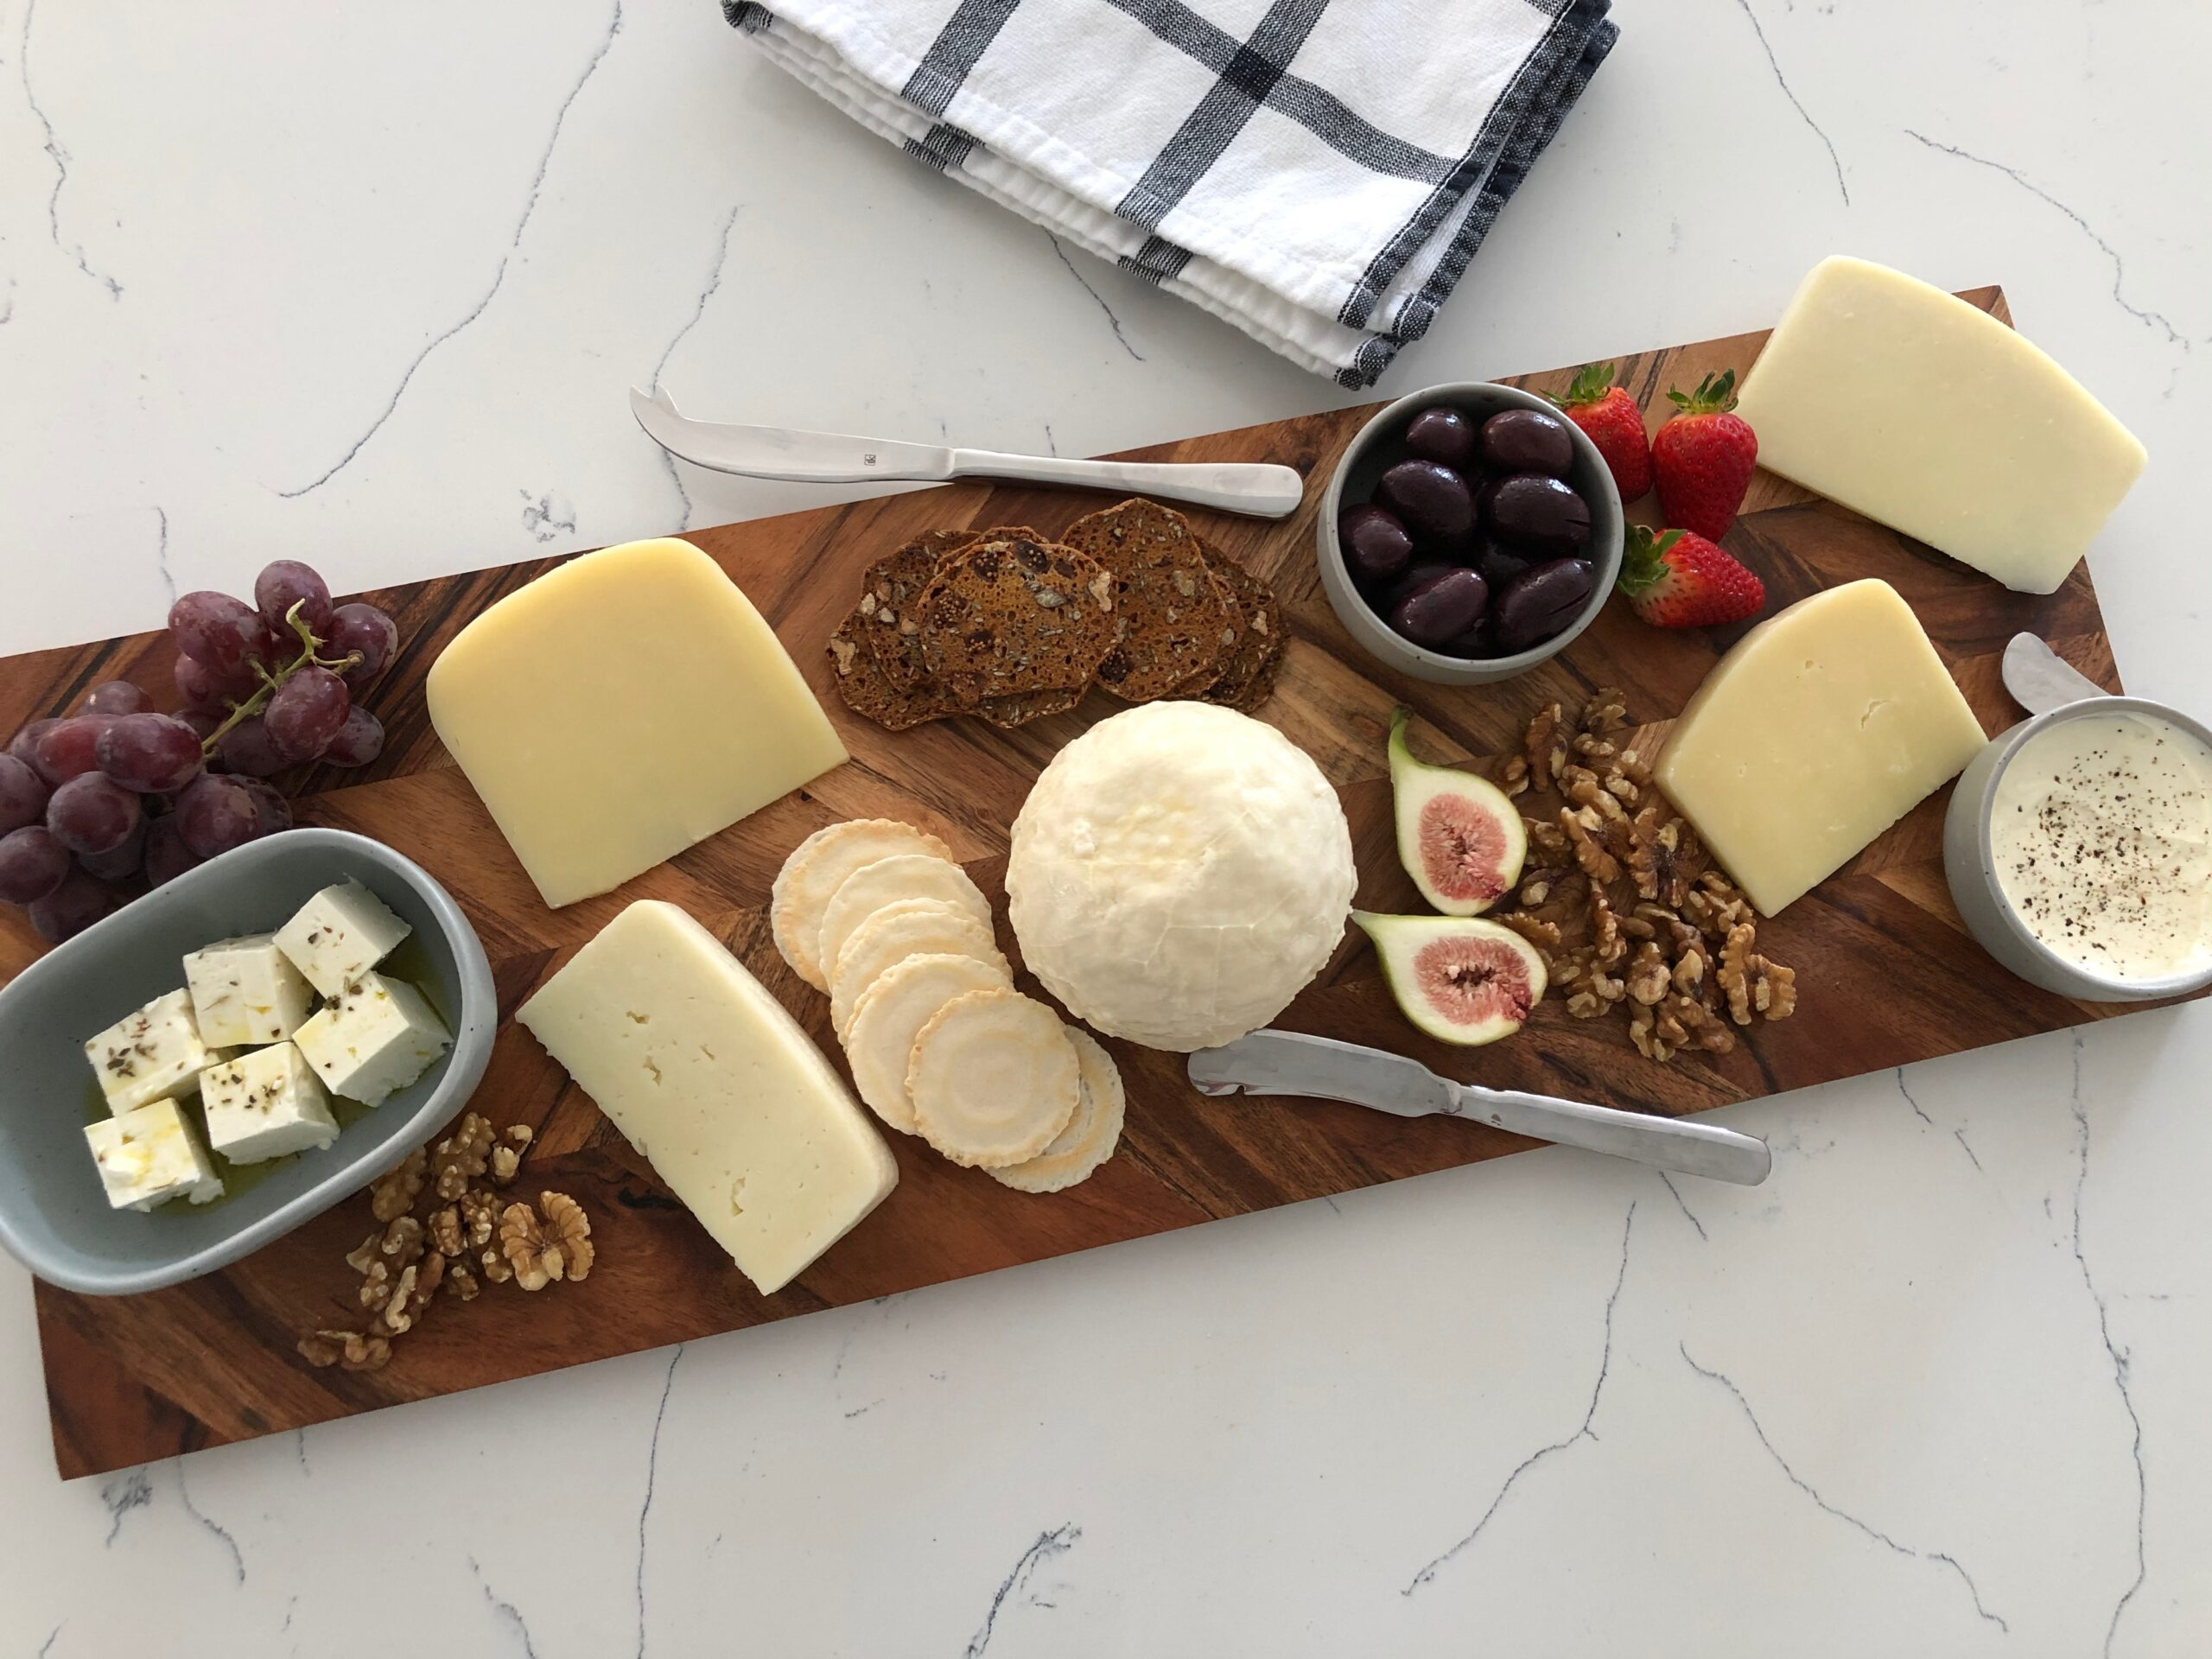 GREEK CHEESE IMAGE BY INSIGHTS GREECE (Copyright)